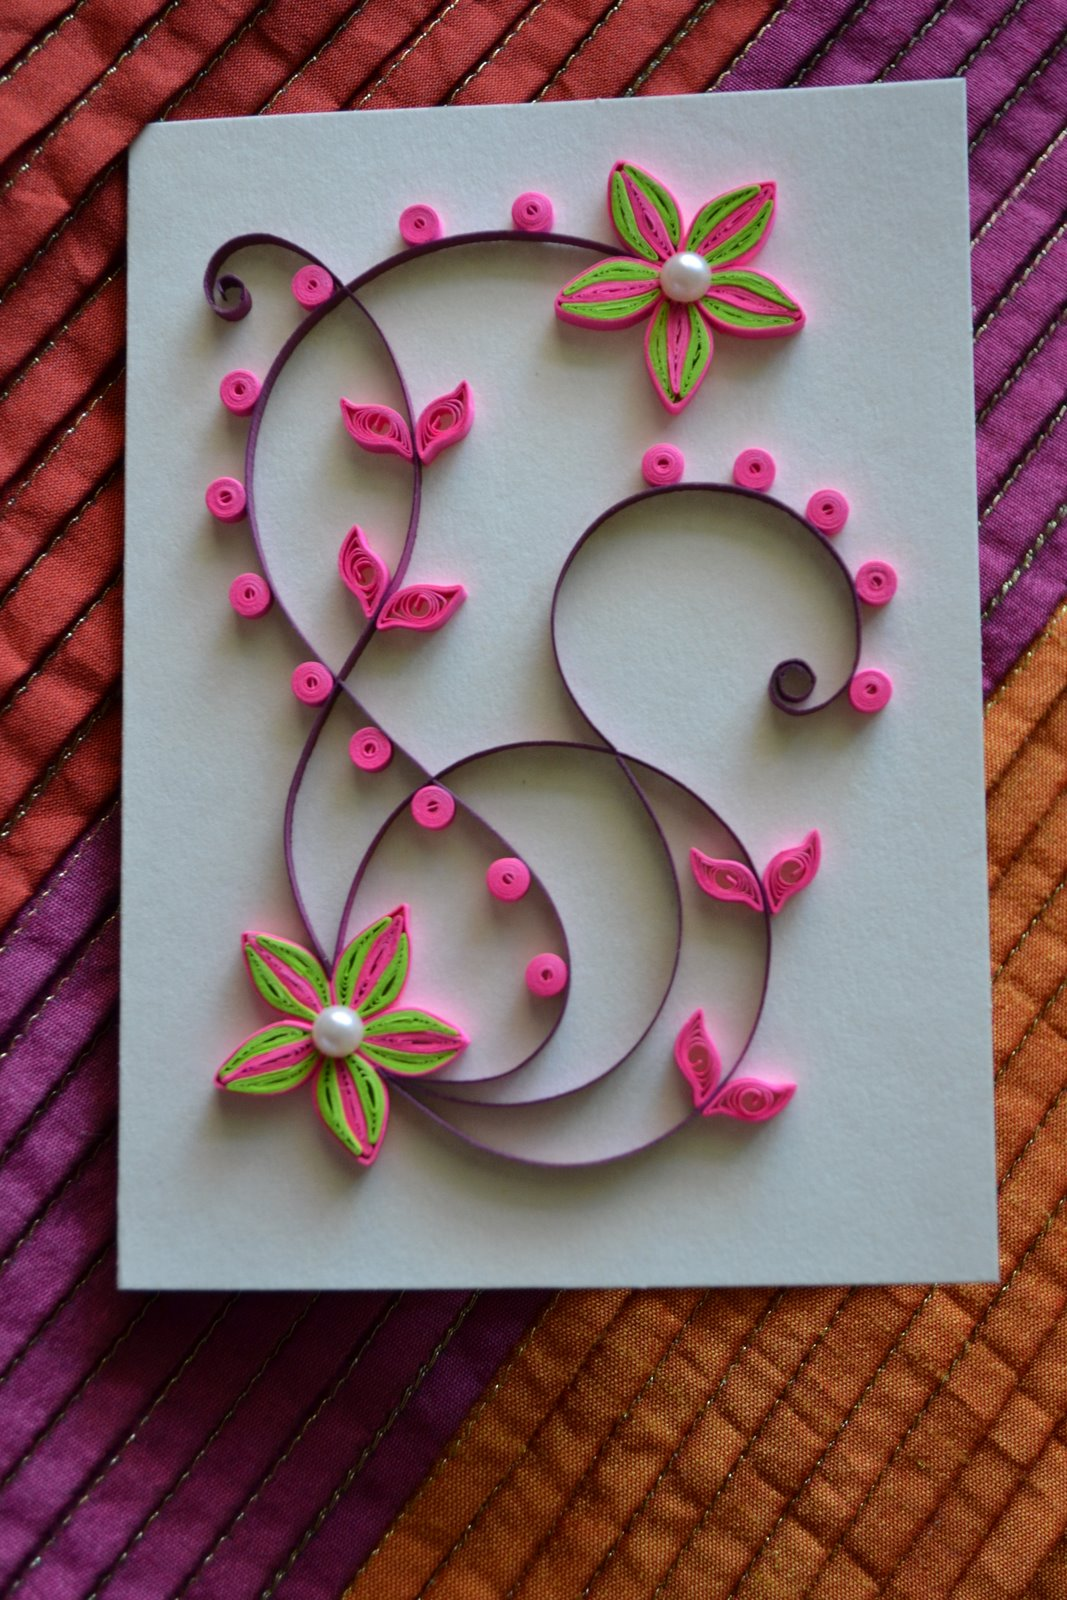 Quilling ideas november 2011 for Quilling craft ideas